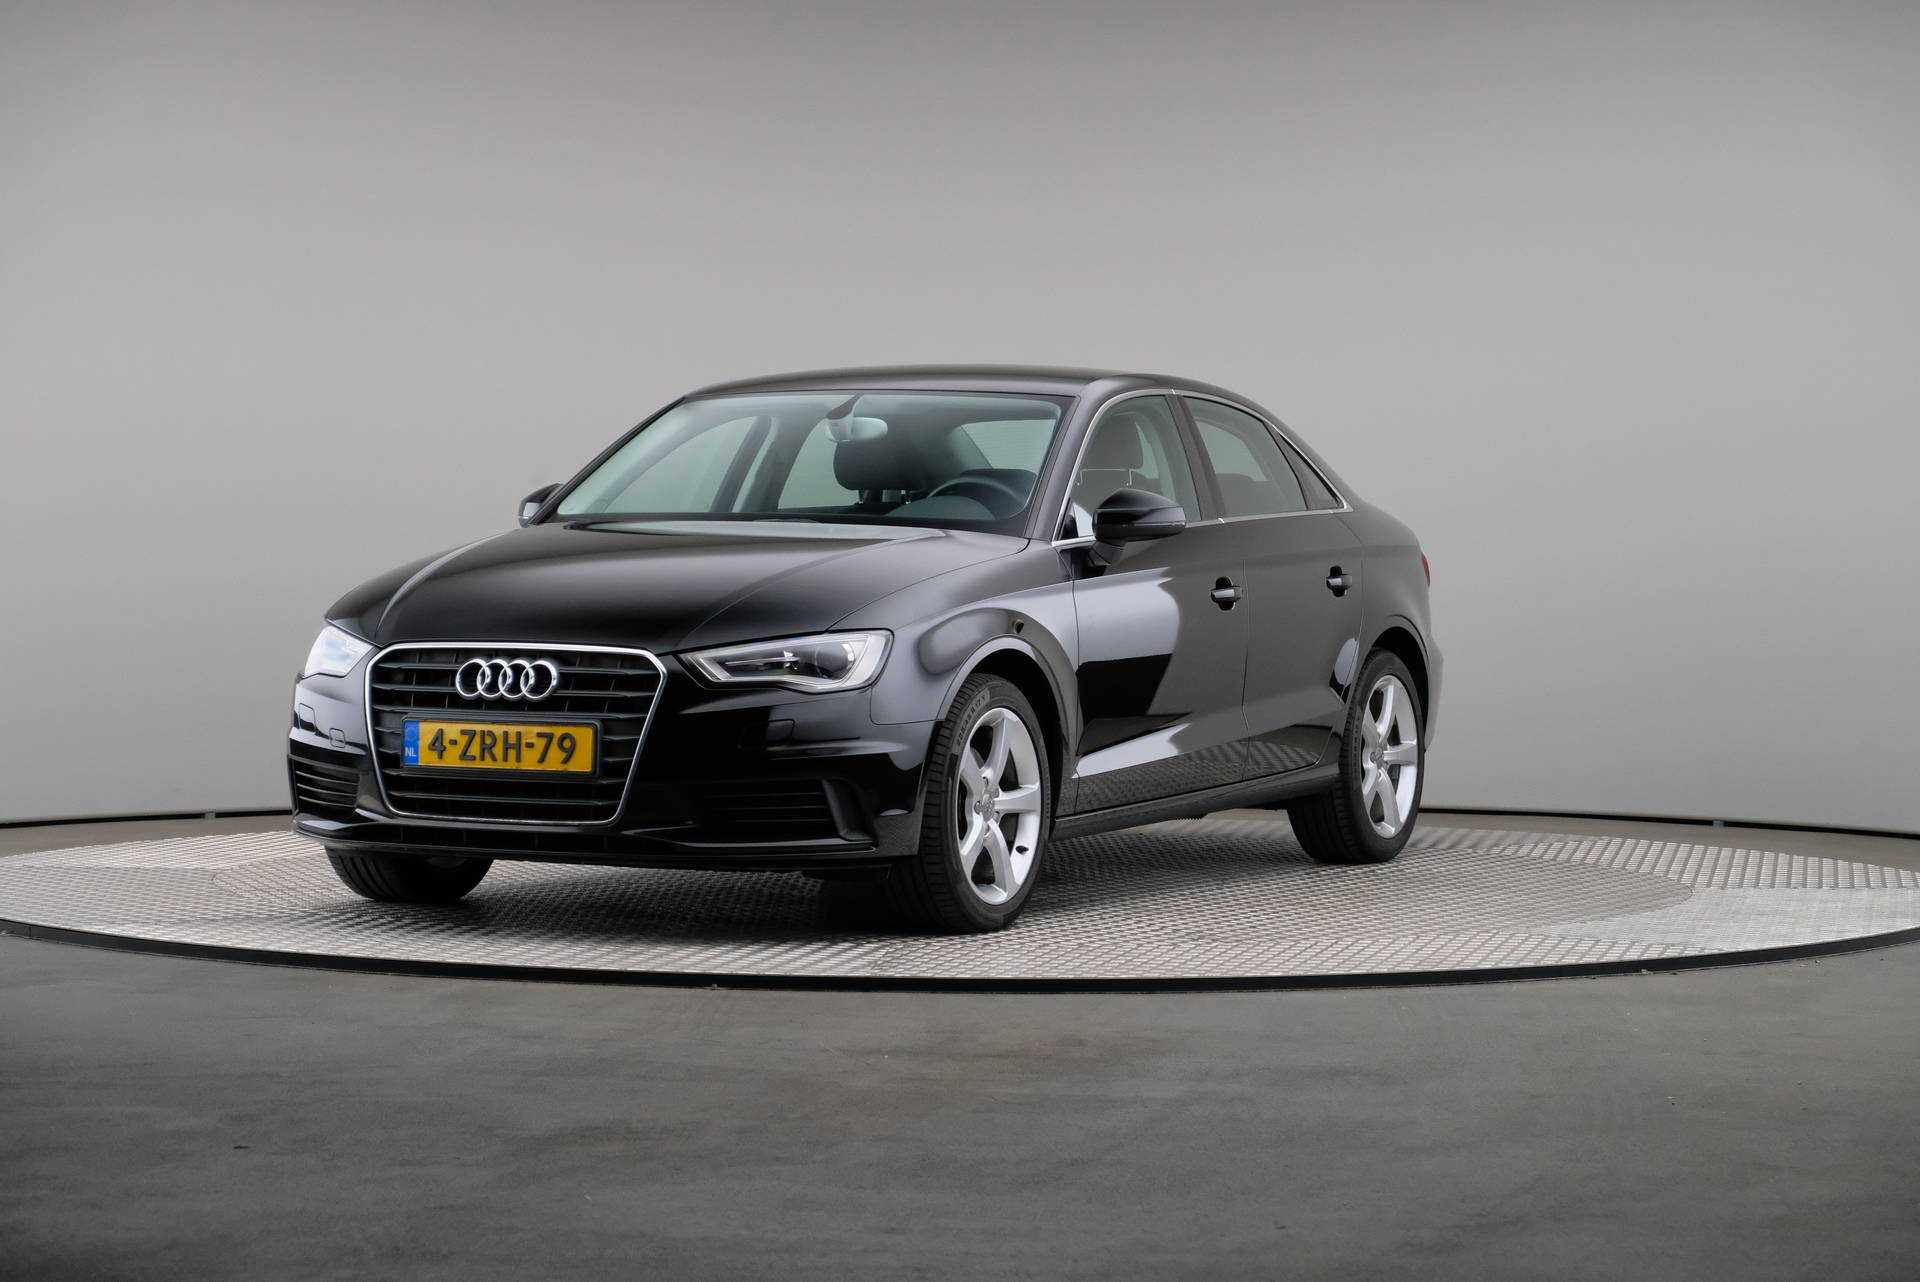 Audi A3 Limousine 1.6 TDI Attraction Pro Line Plus, Navigatie, Xenon, 360-image35